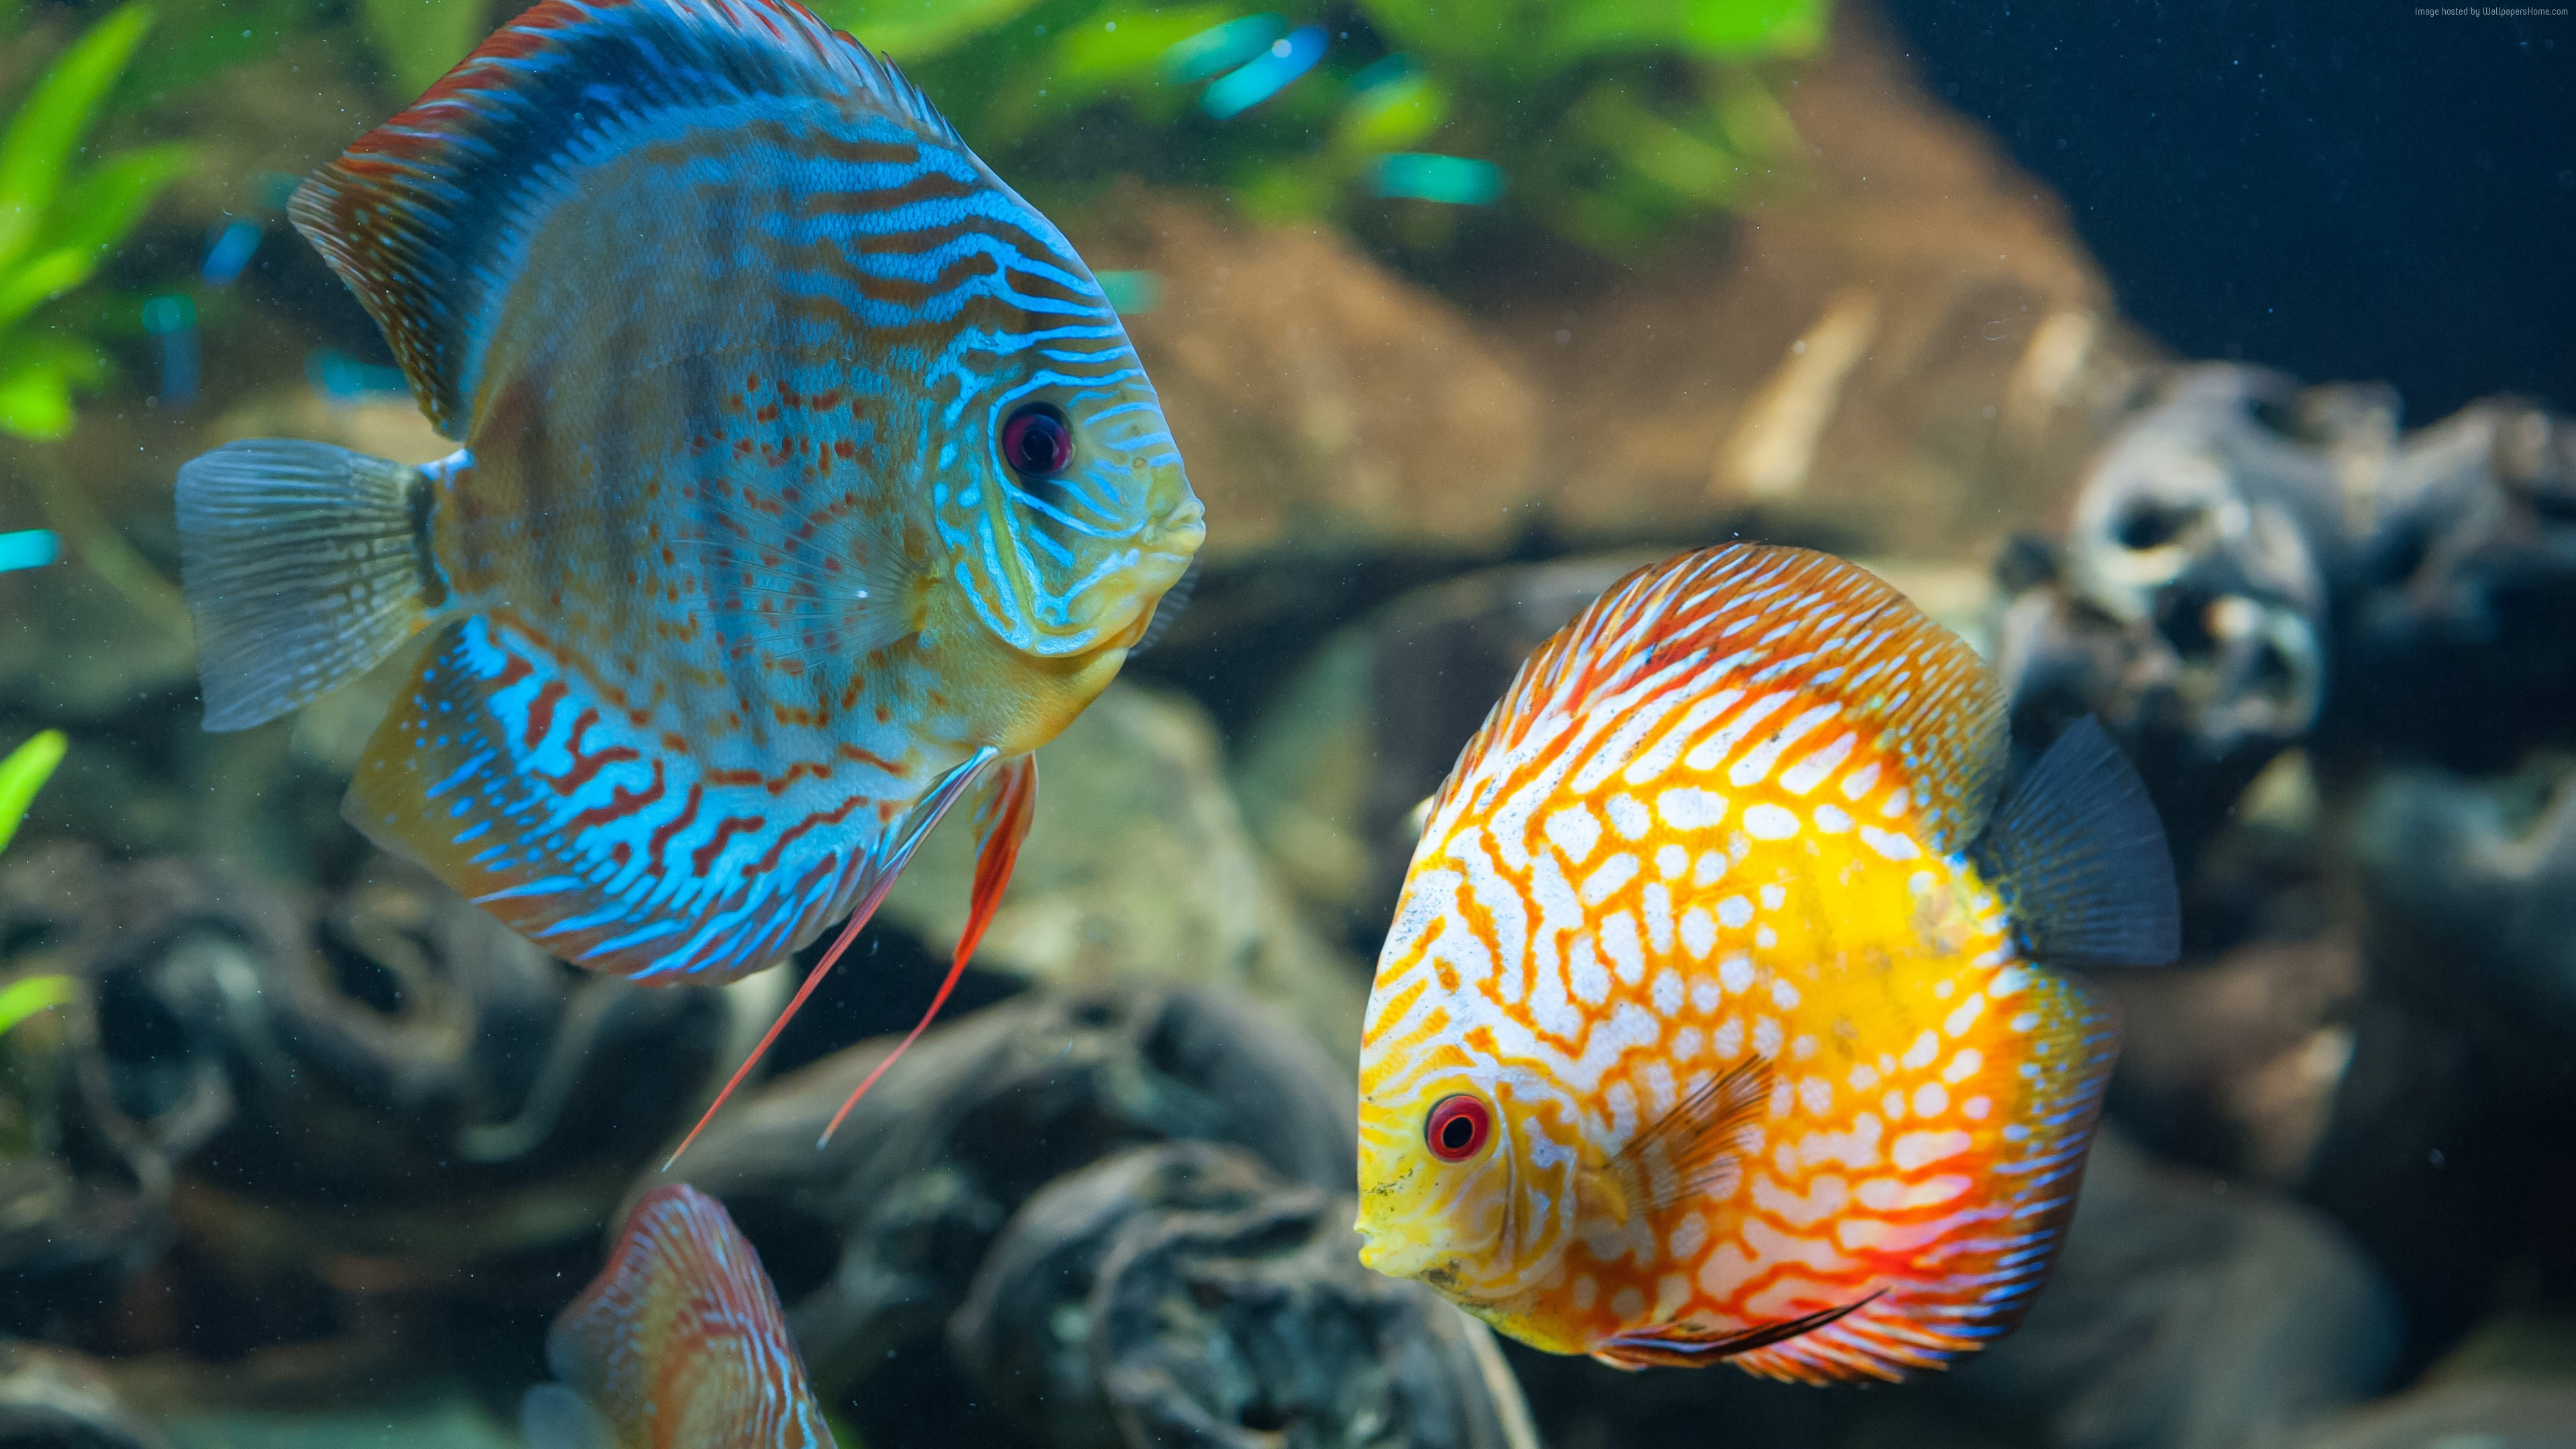 Wallpaper Discus, exotic, aquarium, fish, close up, water, blue, orange, World&